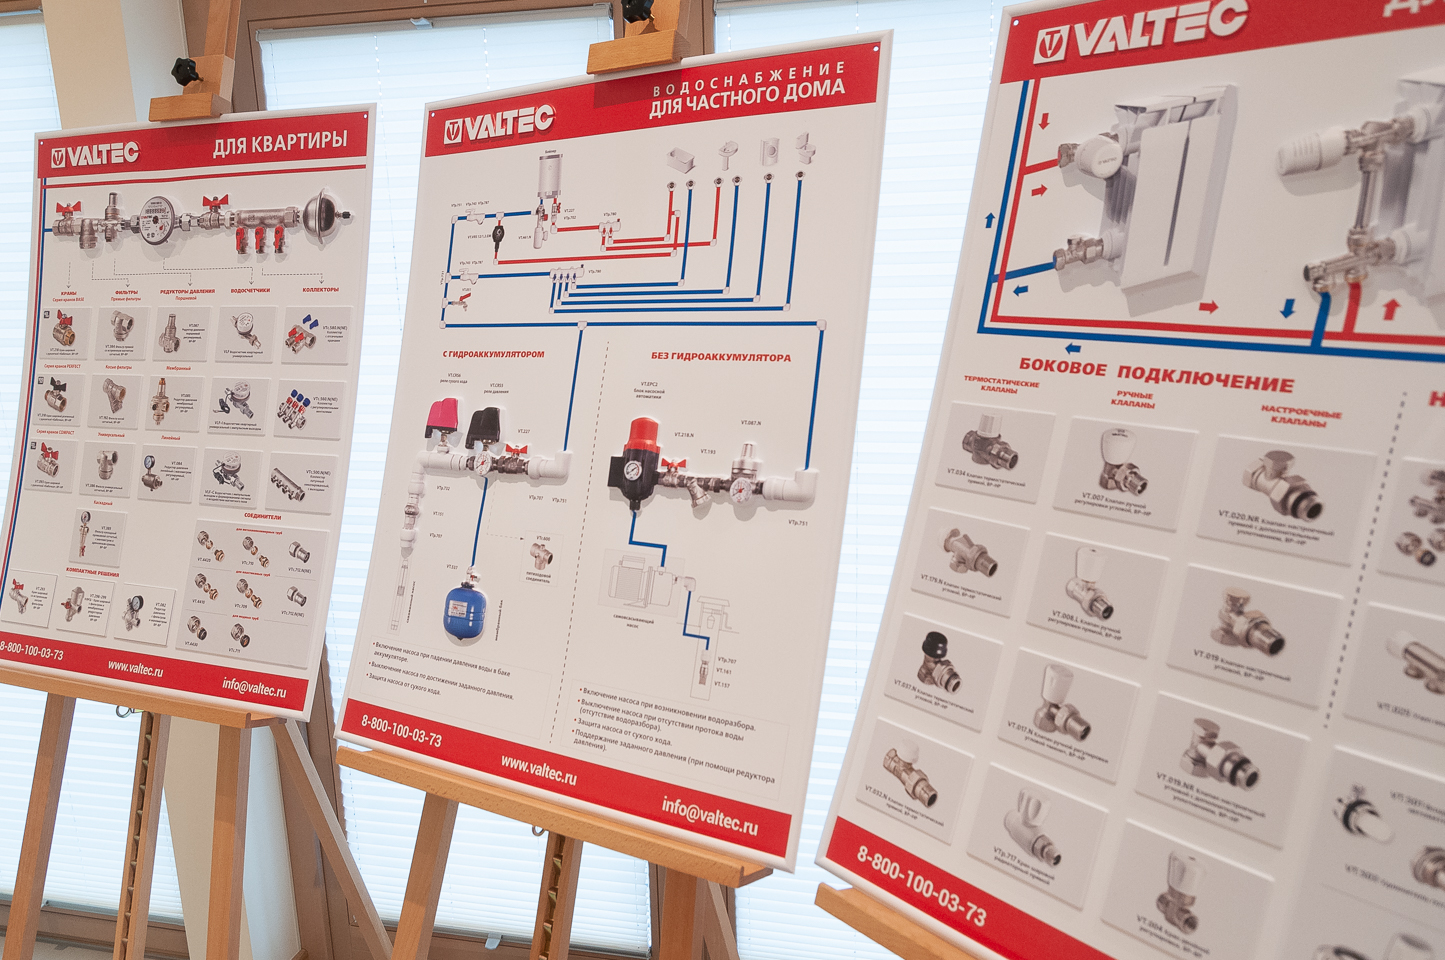 VALTEC products